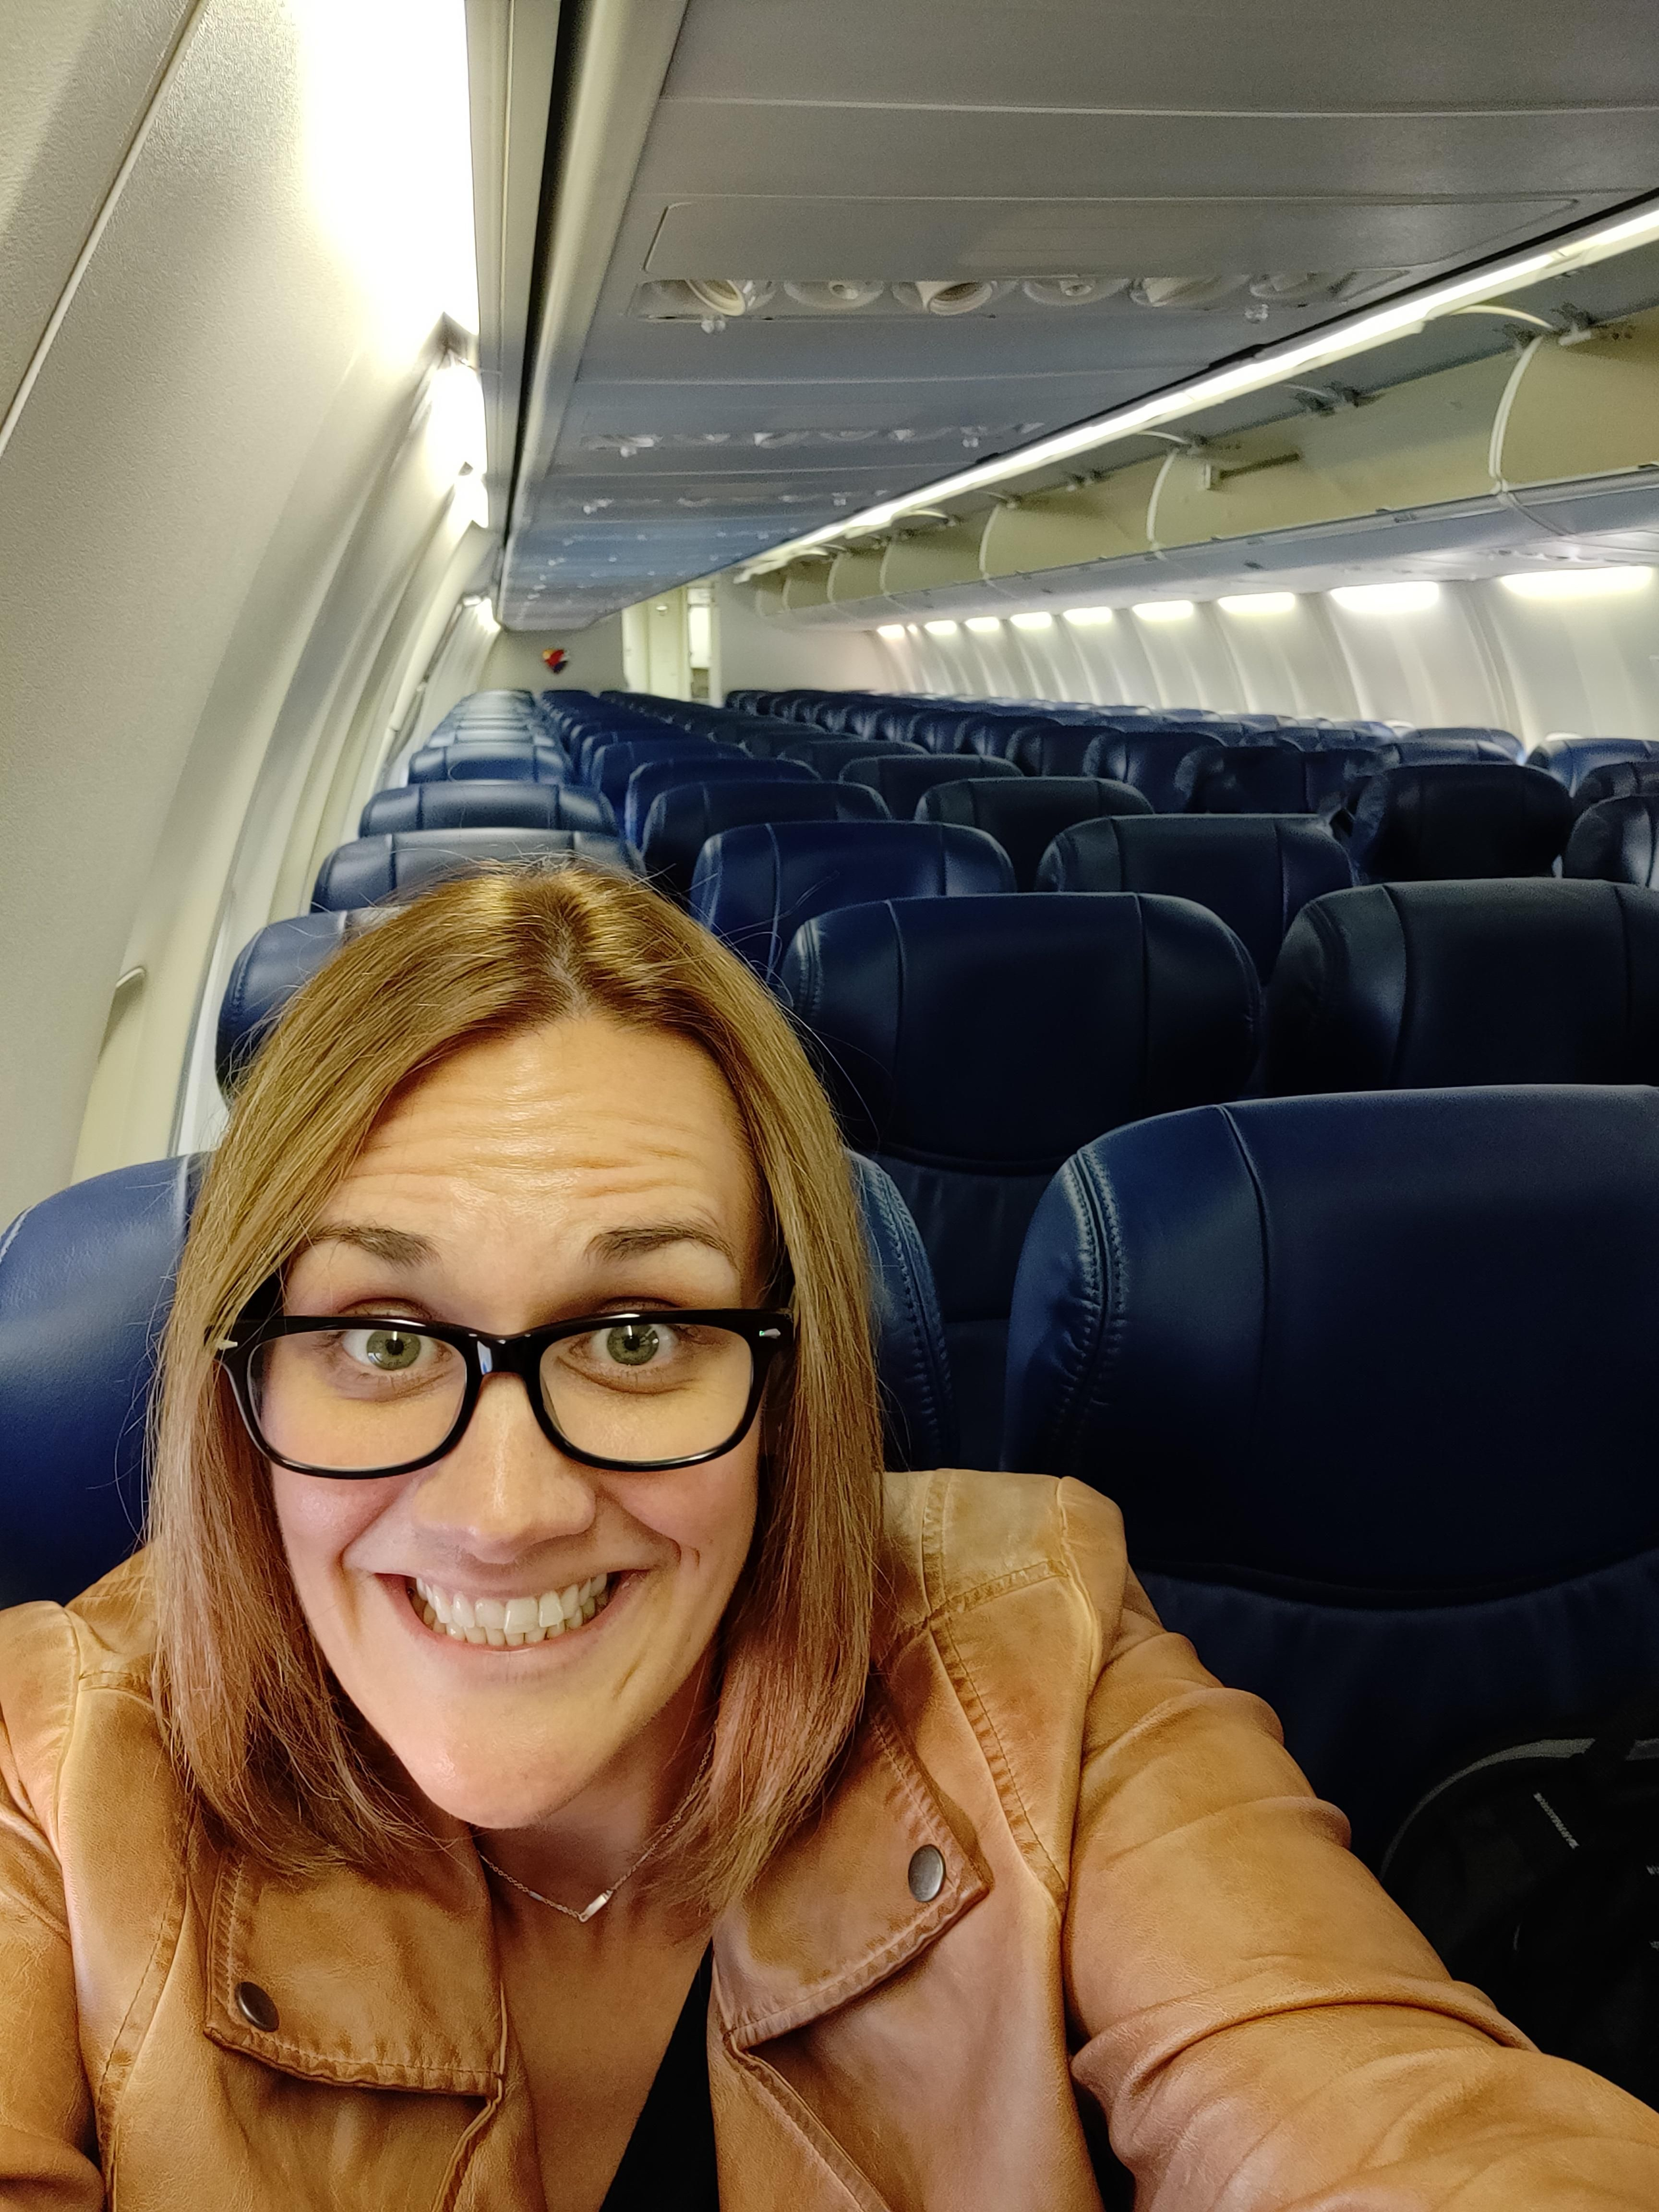 Know the feeling you get when the middle seat is open next to you on a flight? I can beat that...